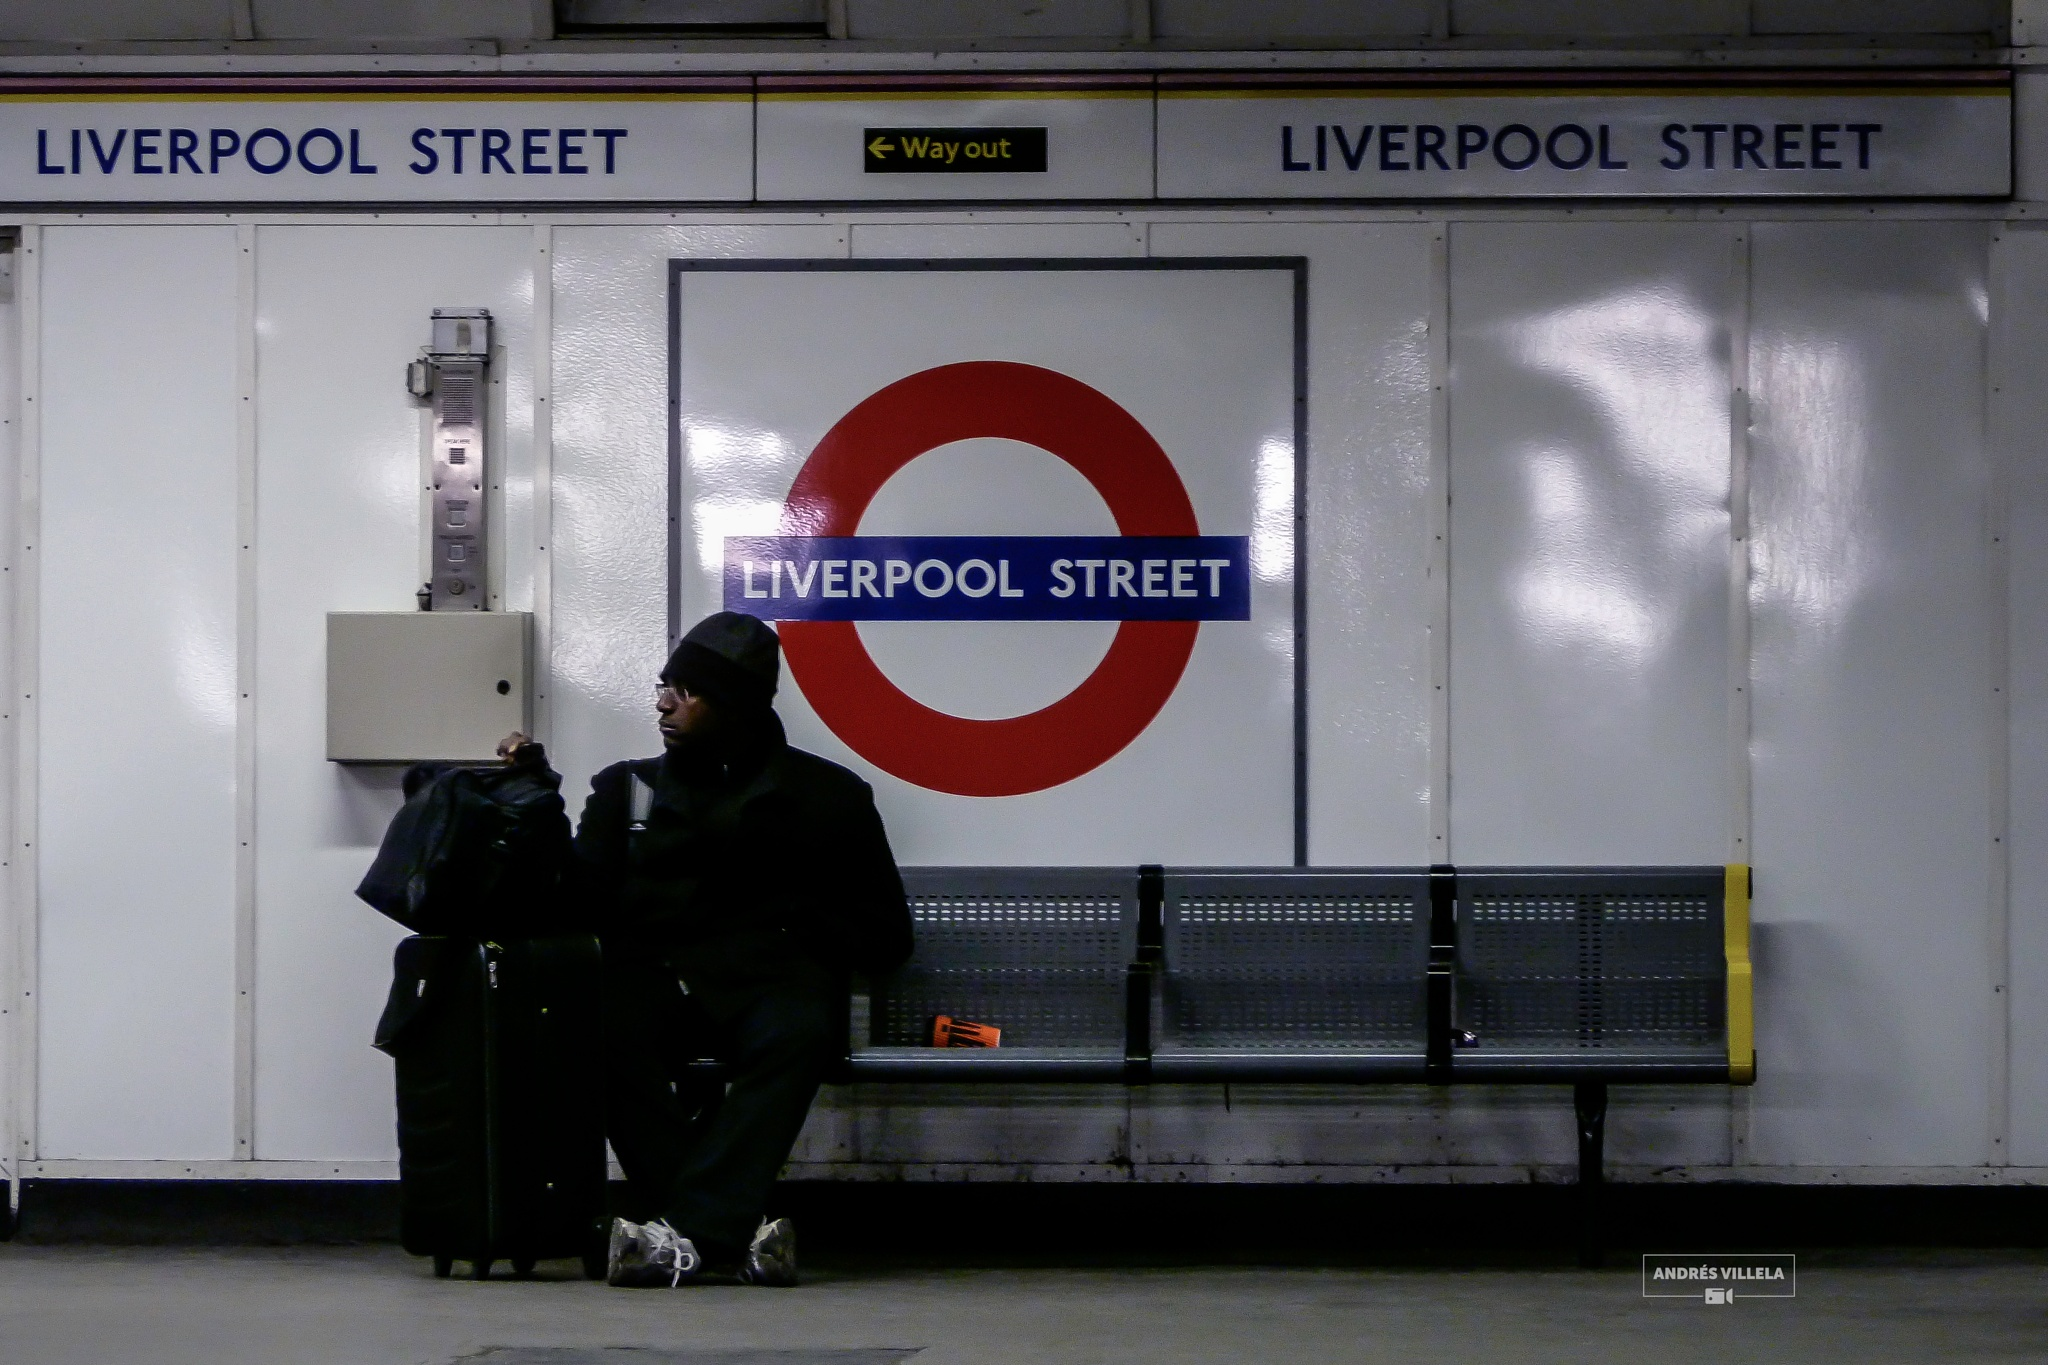 Liverpool street by andres villela